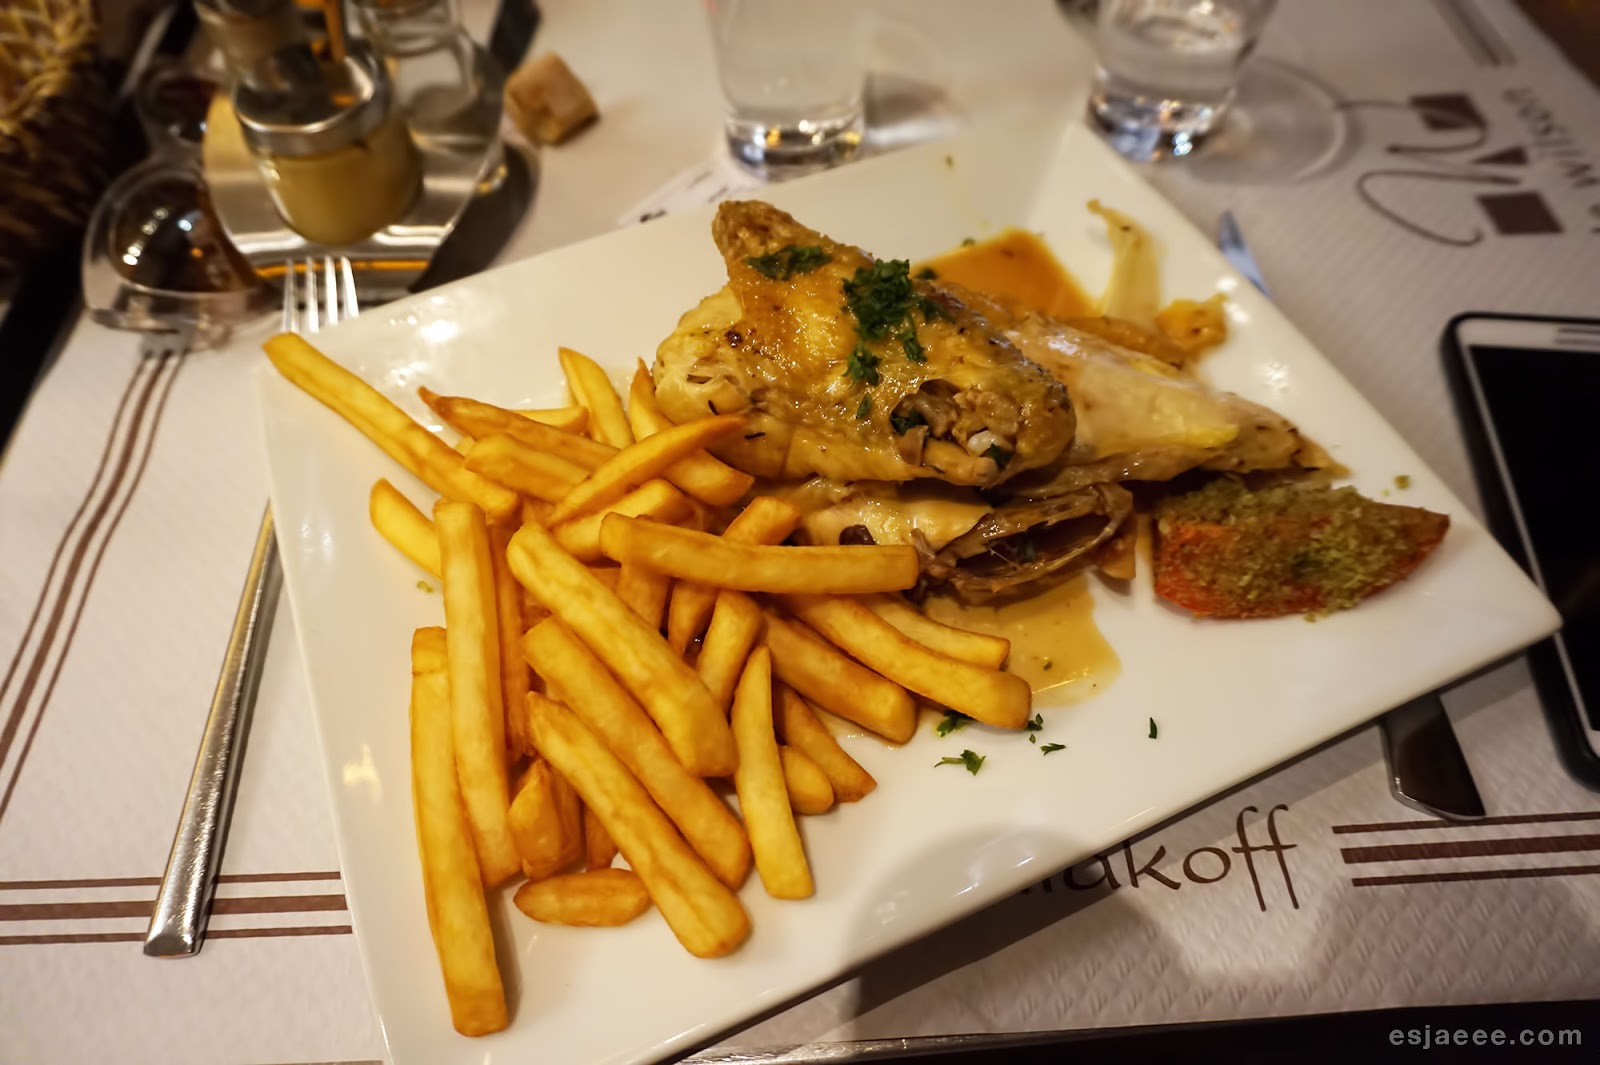 Roast chicken with Fries at Le Wilson